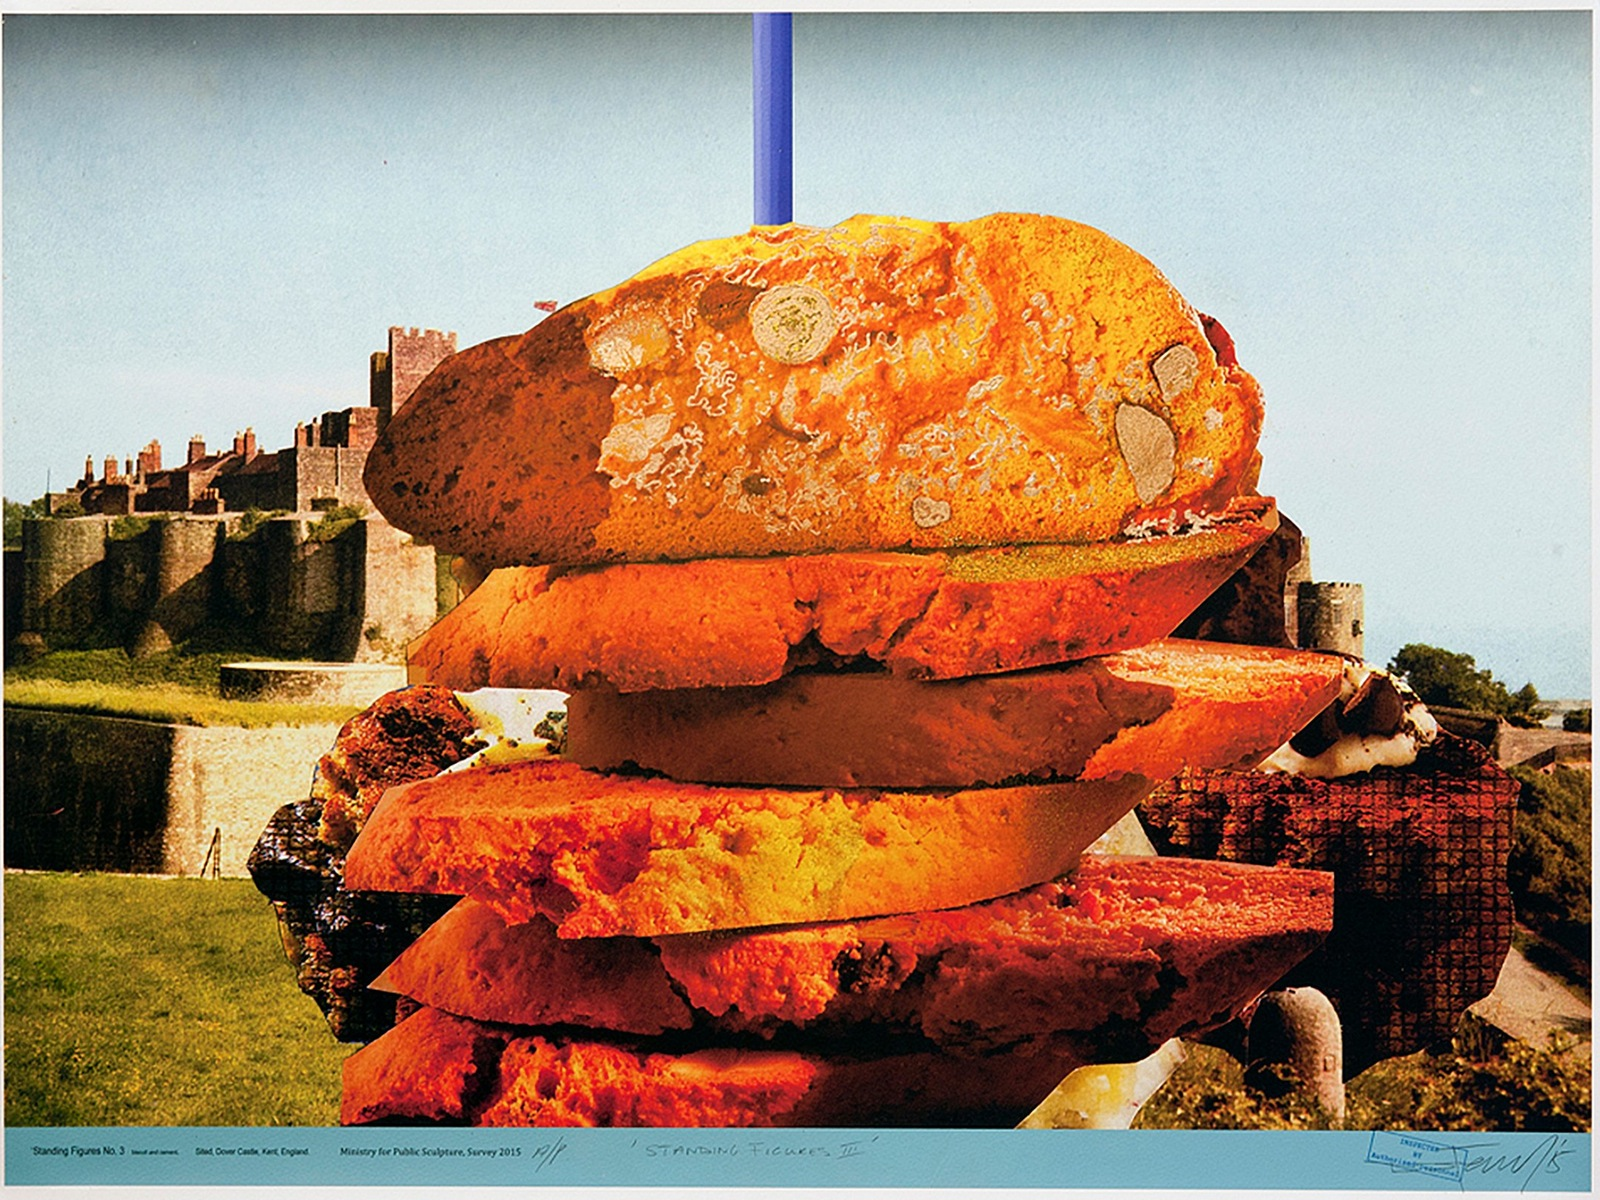 A pile of slices of bread is superimposed on a photograph of an English castle